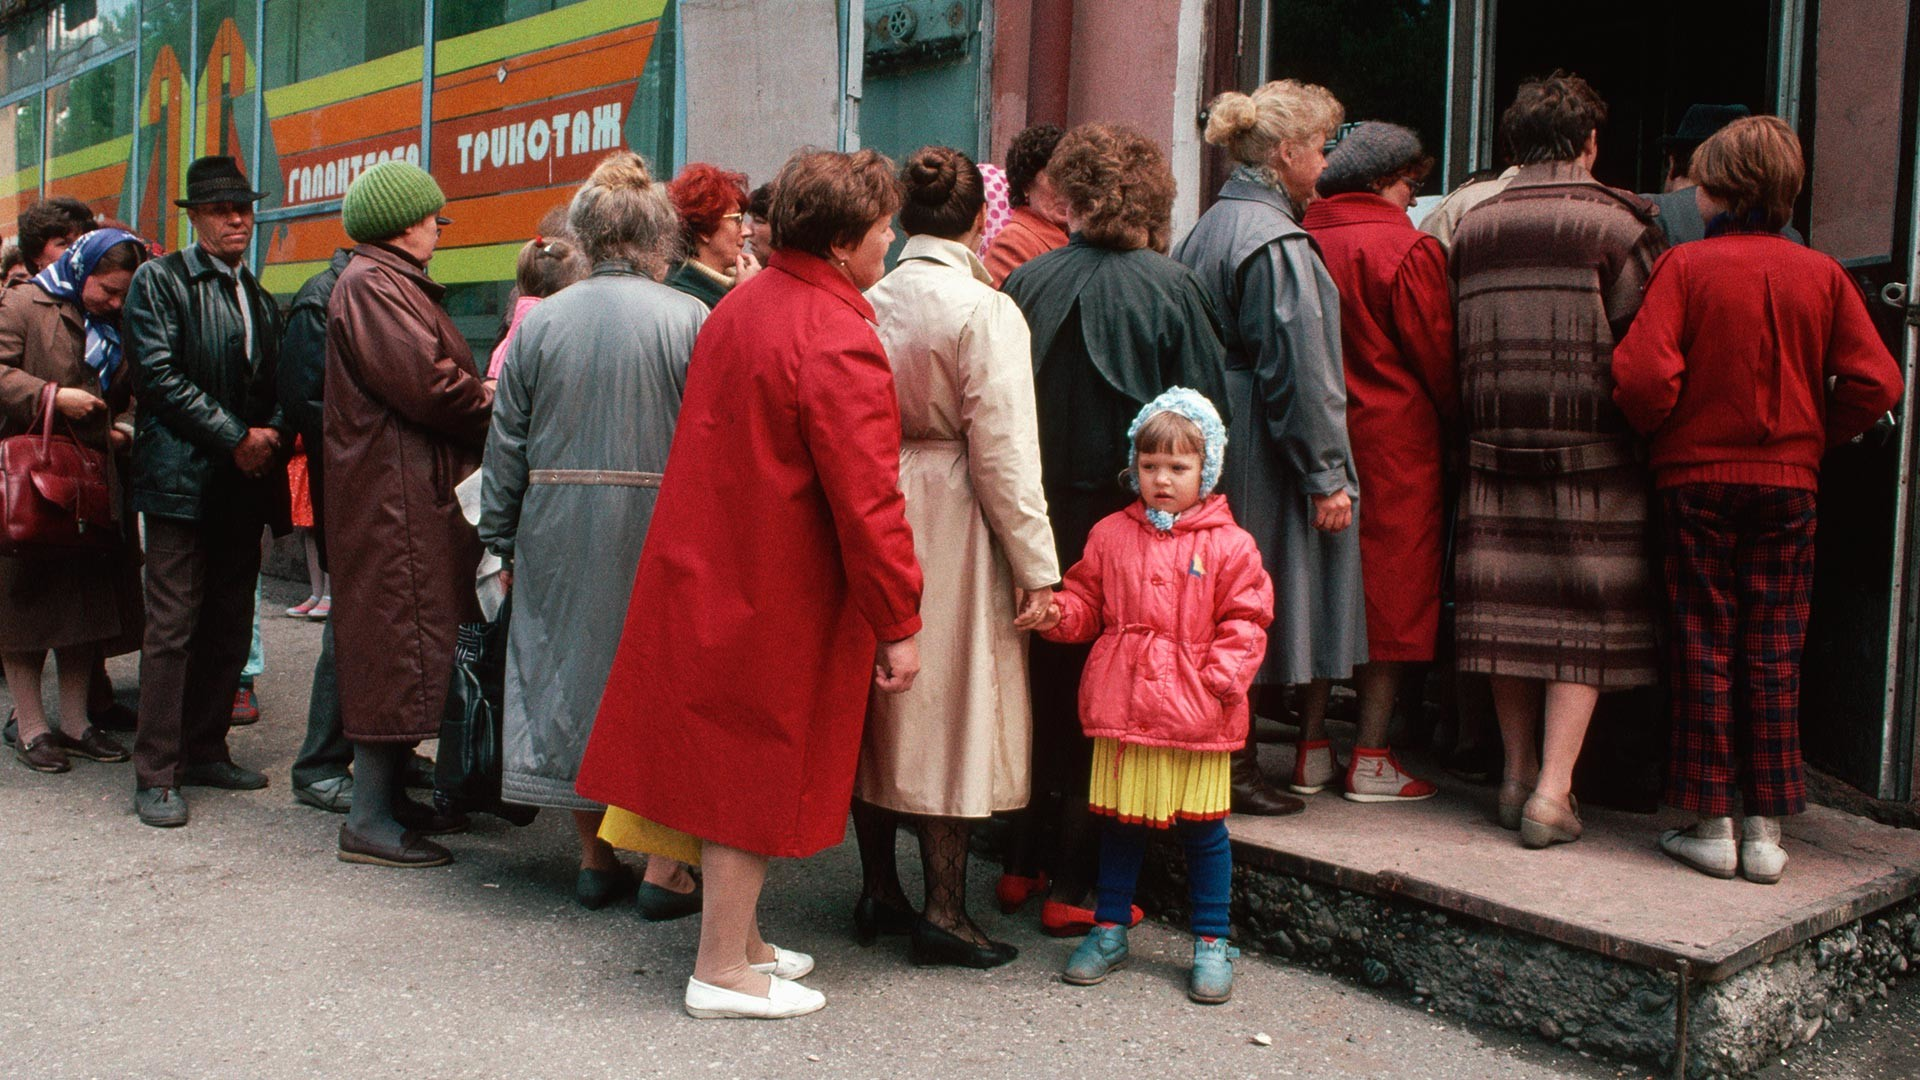 Siberians lining up outside a store